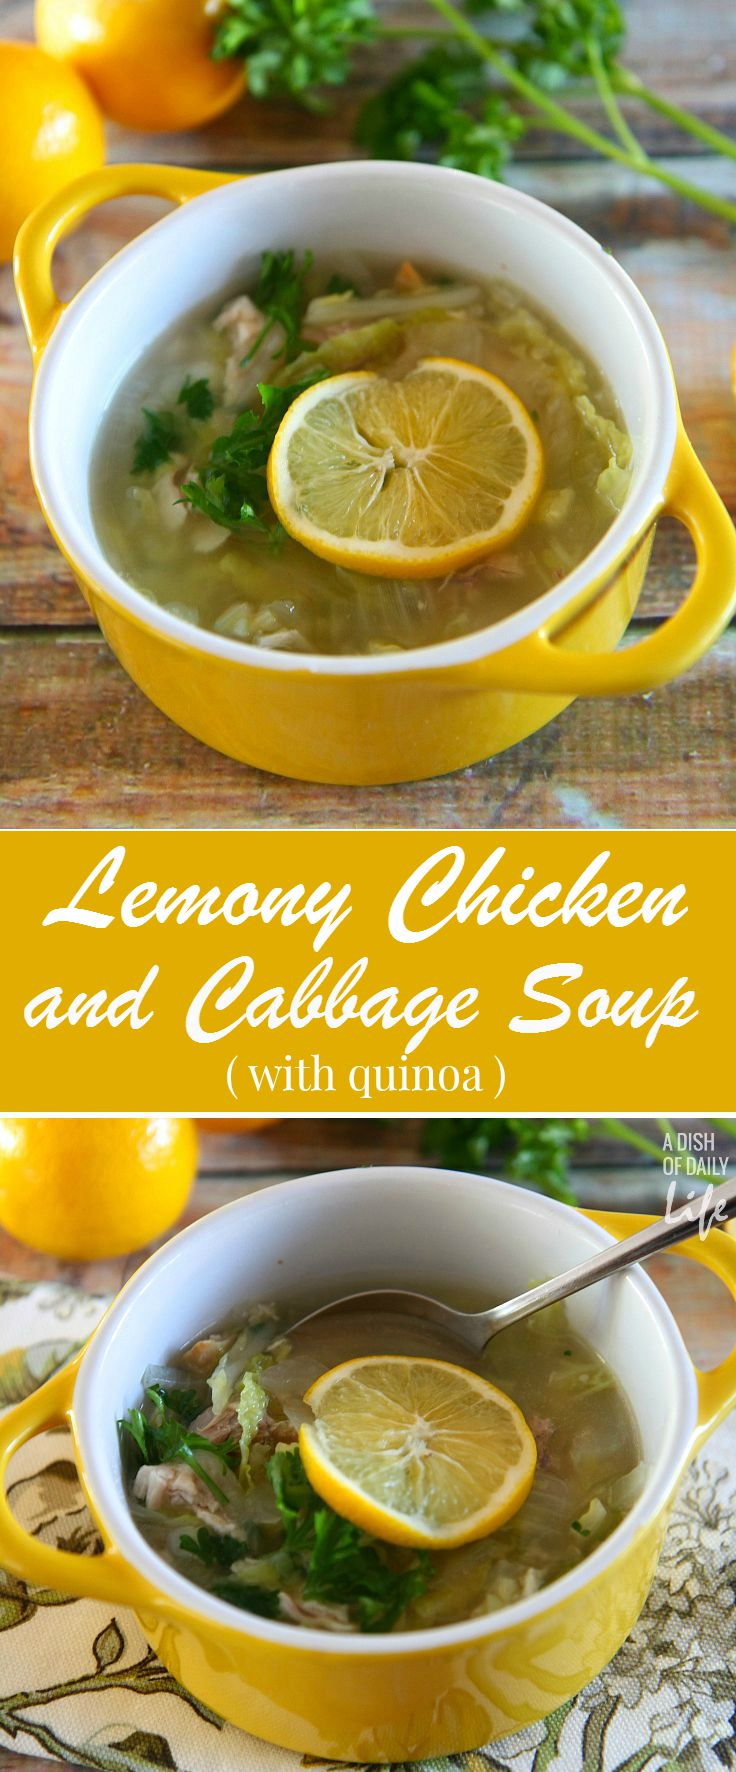 Lemony Chicken and Cabbage Soup with Quinoa is a healthy and delicious easy to make dinner recipe that you can put on the table in less than 30 minutes. Family favorite!